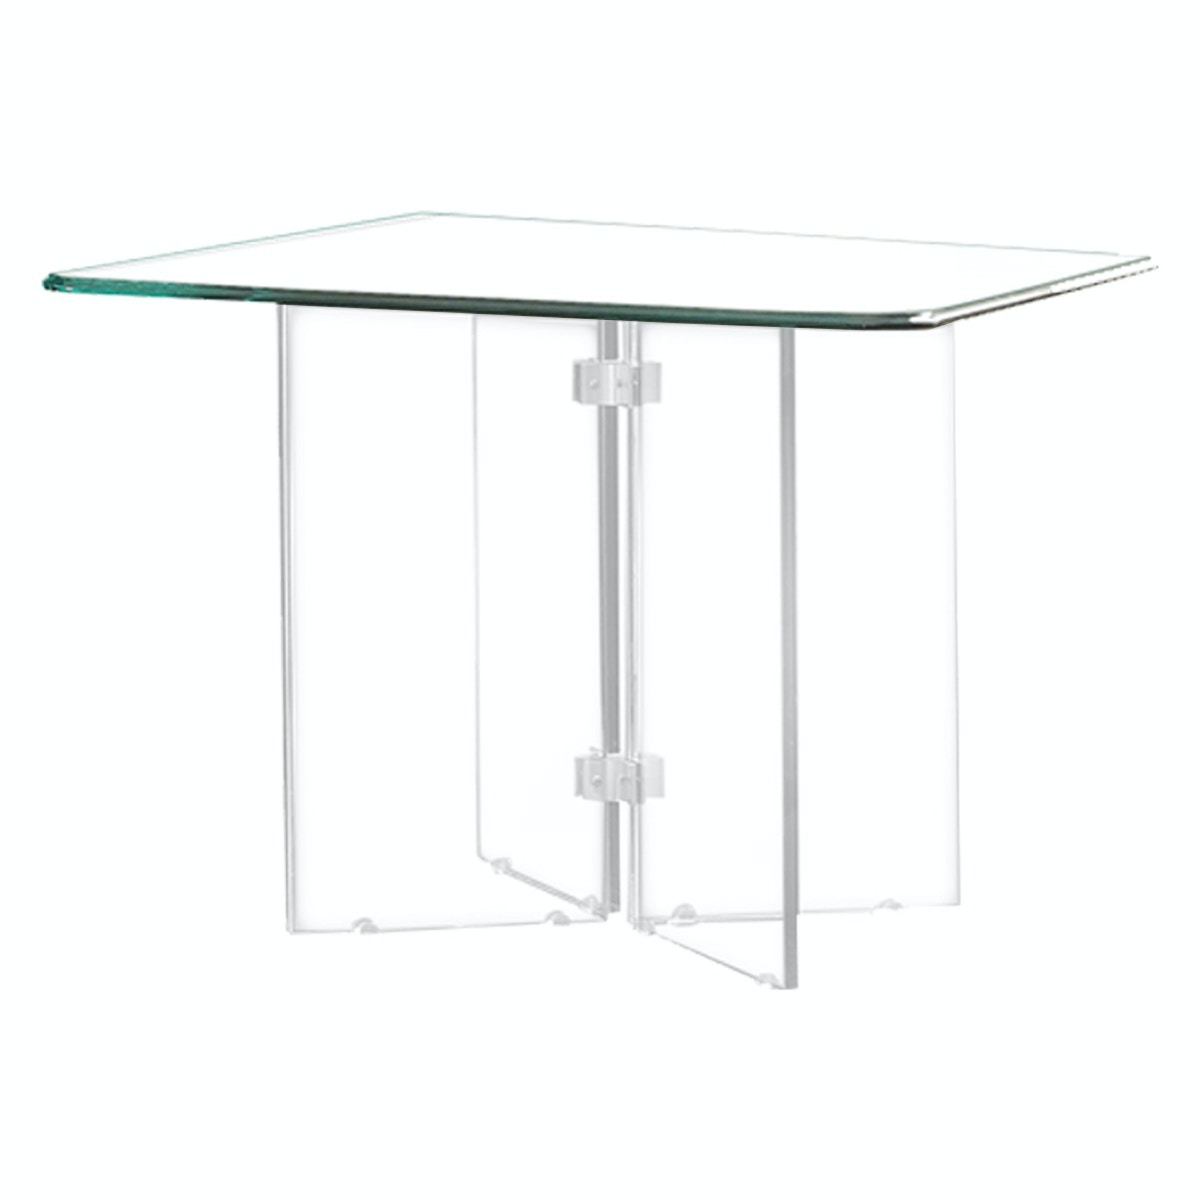 Homelegance (1/2) Square End Table Glass Top 17807